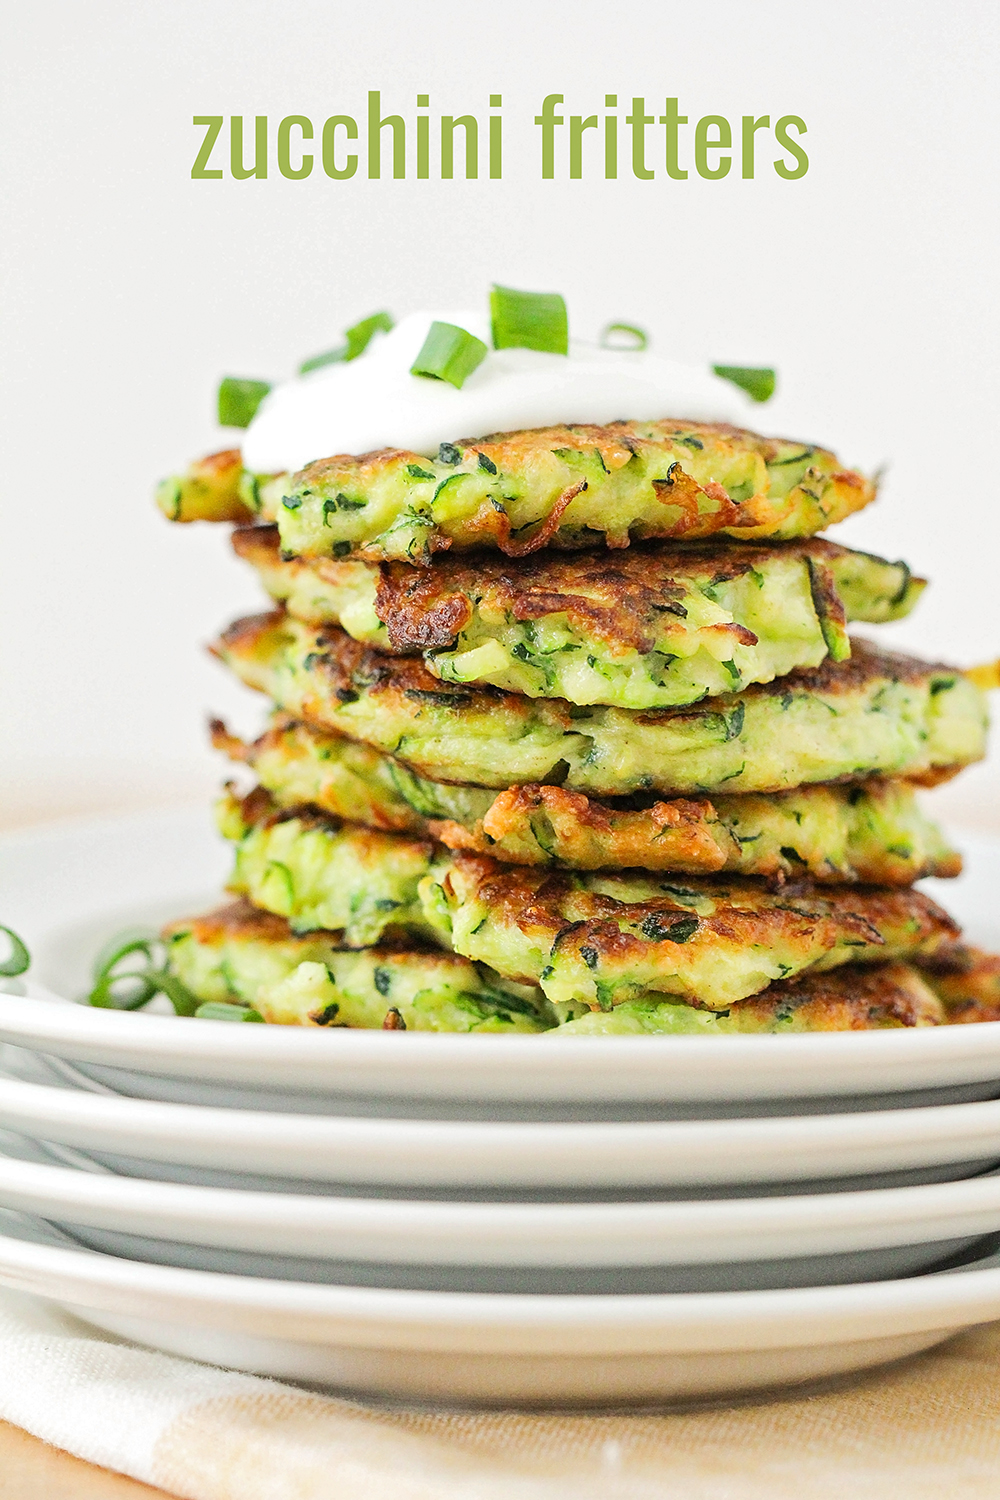 These delicious and savory zucchini fritters are the perfect summer side dish!